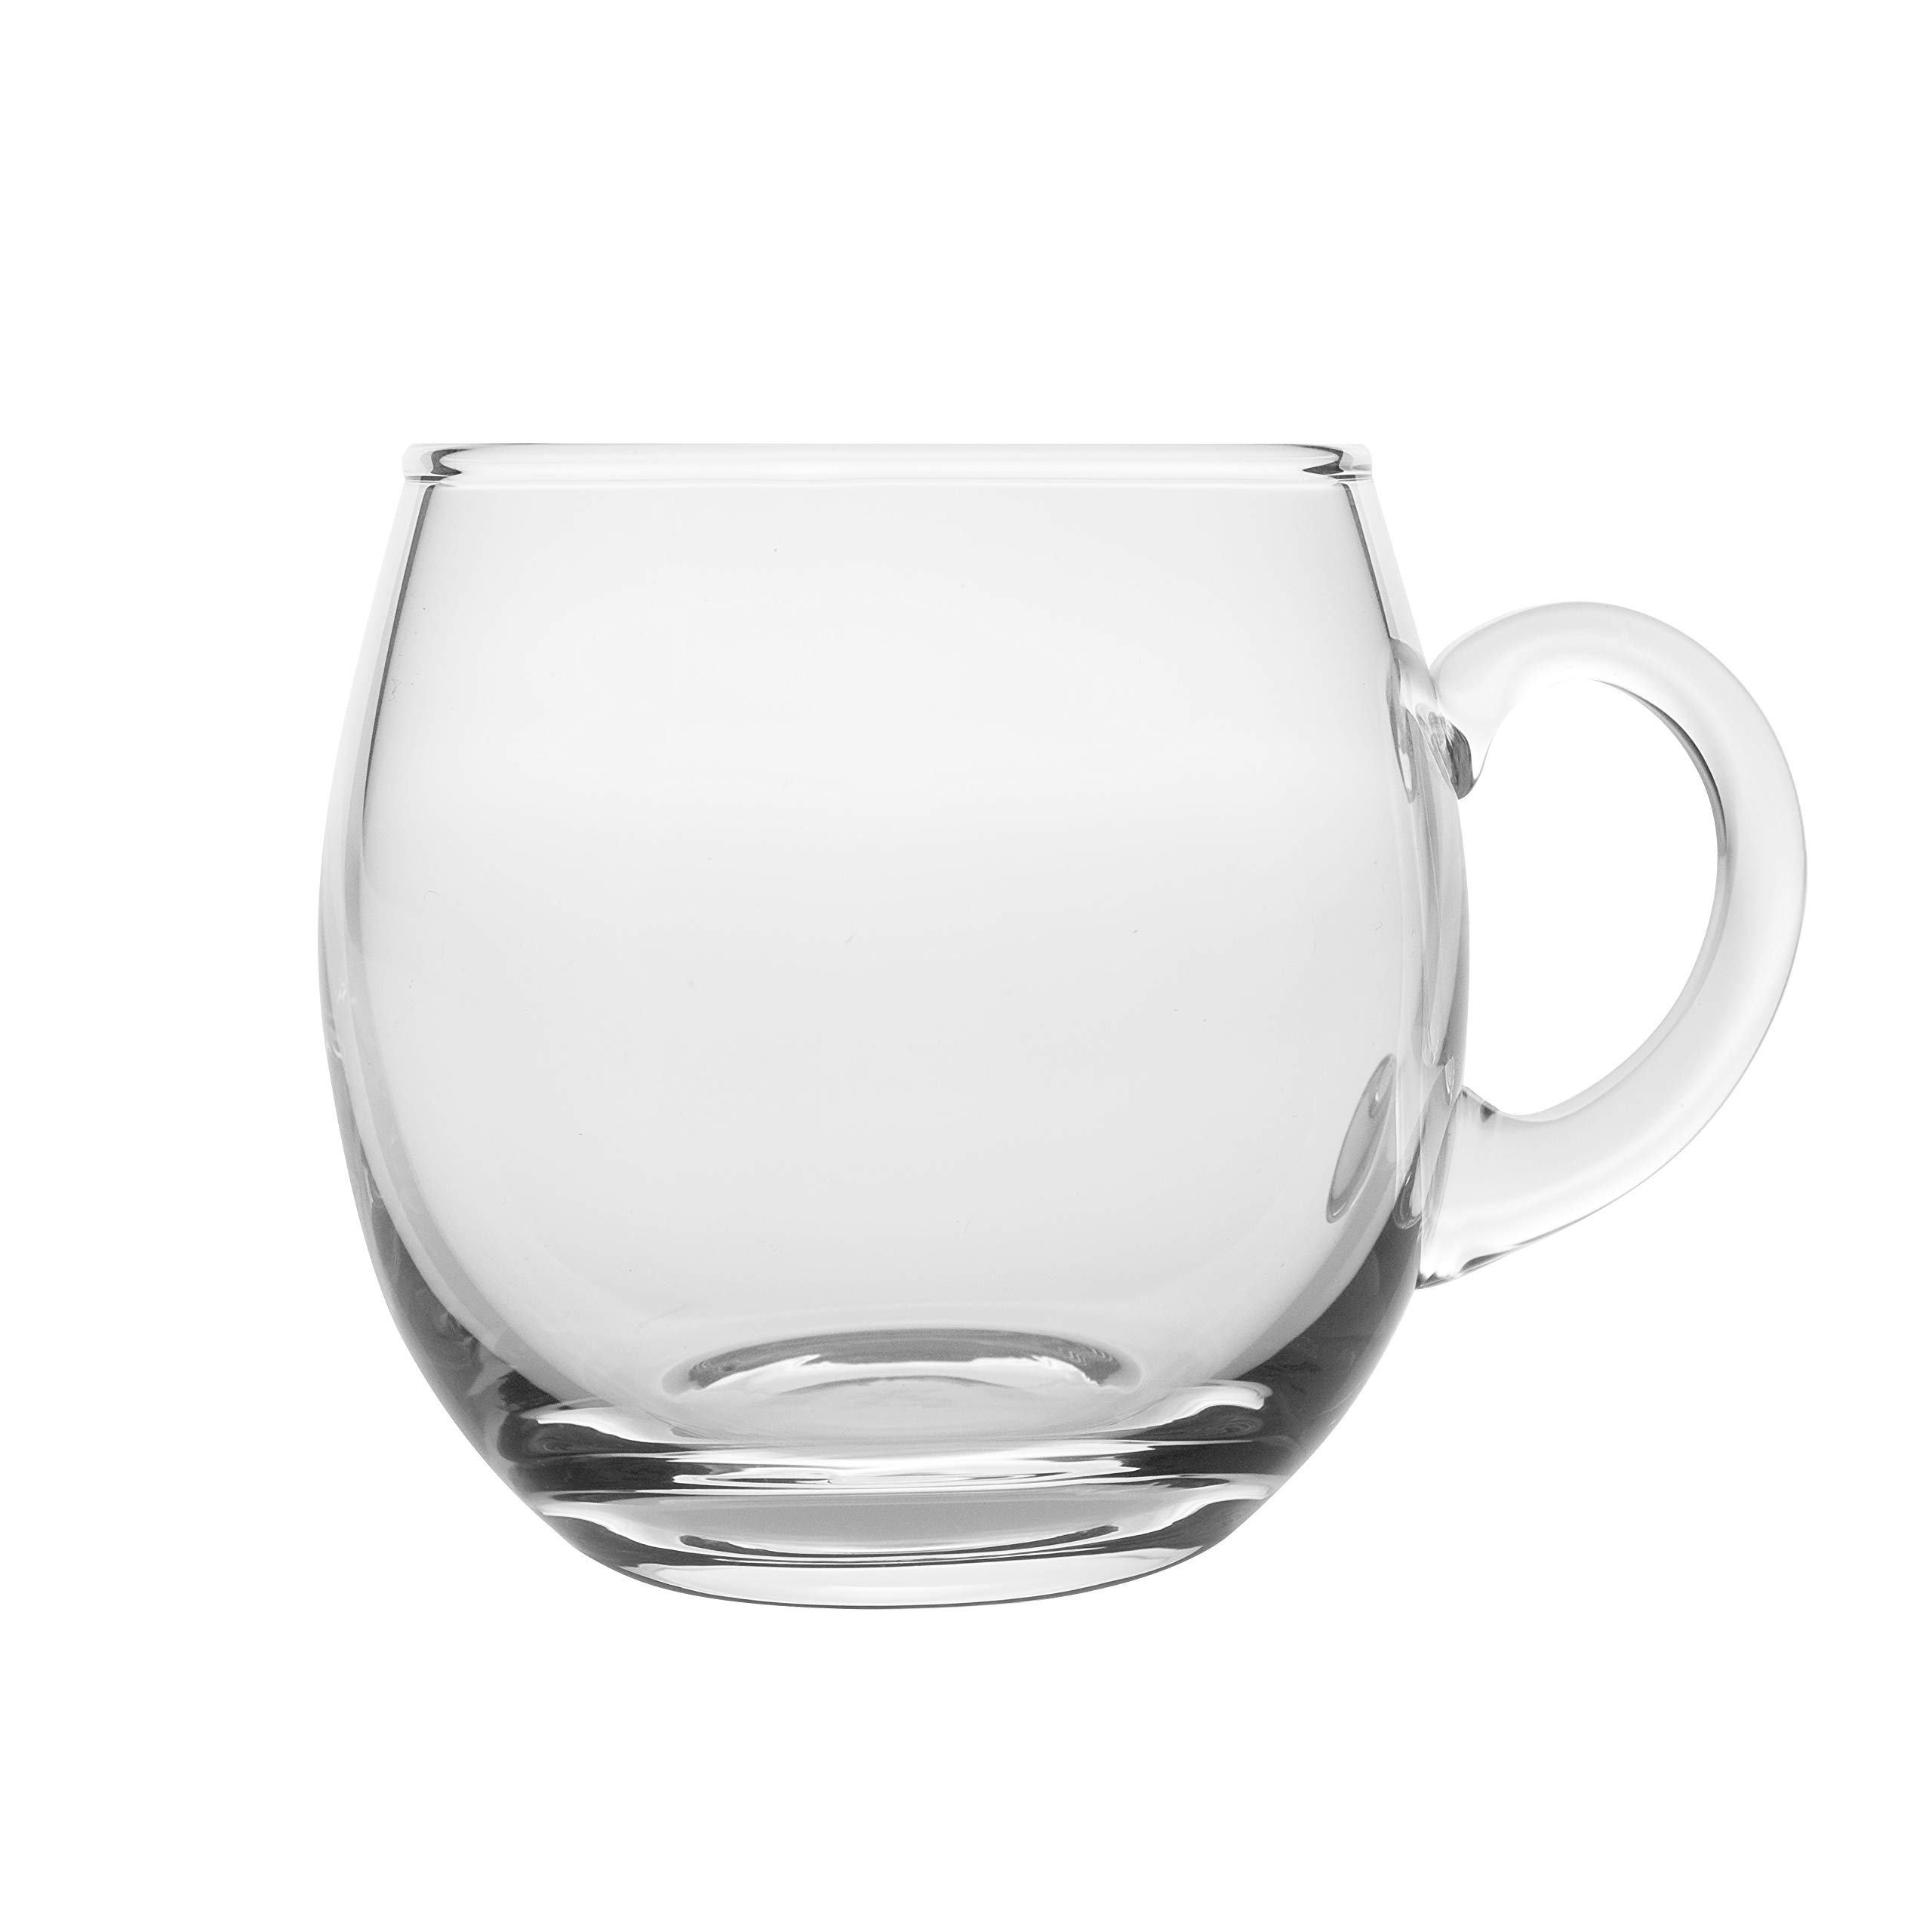 Barski - European Quality - Handmade Glass - Set of 4 - Punch Cups With Handle - Each Cup is 12 oz. - Glasses Are Made Made in Europe by Barski